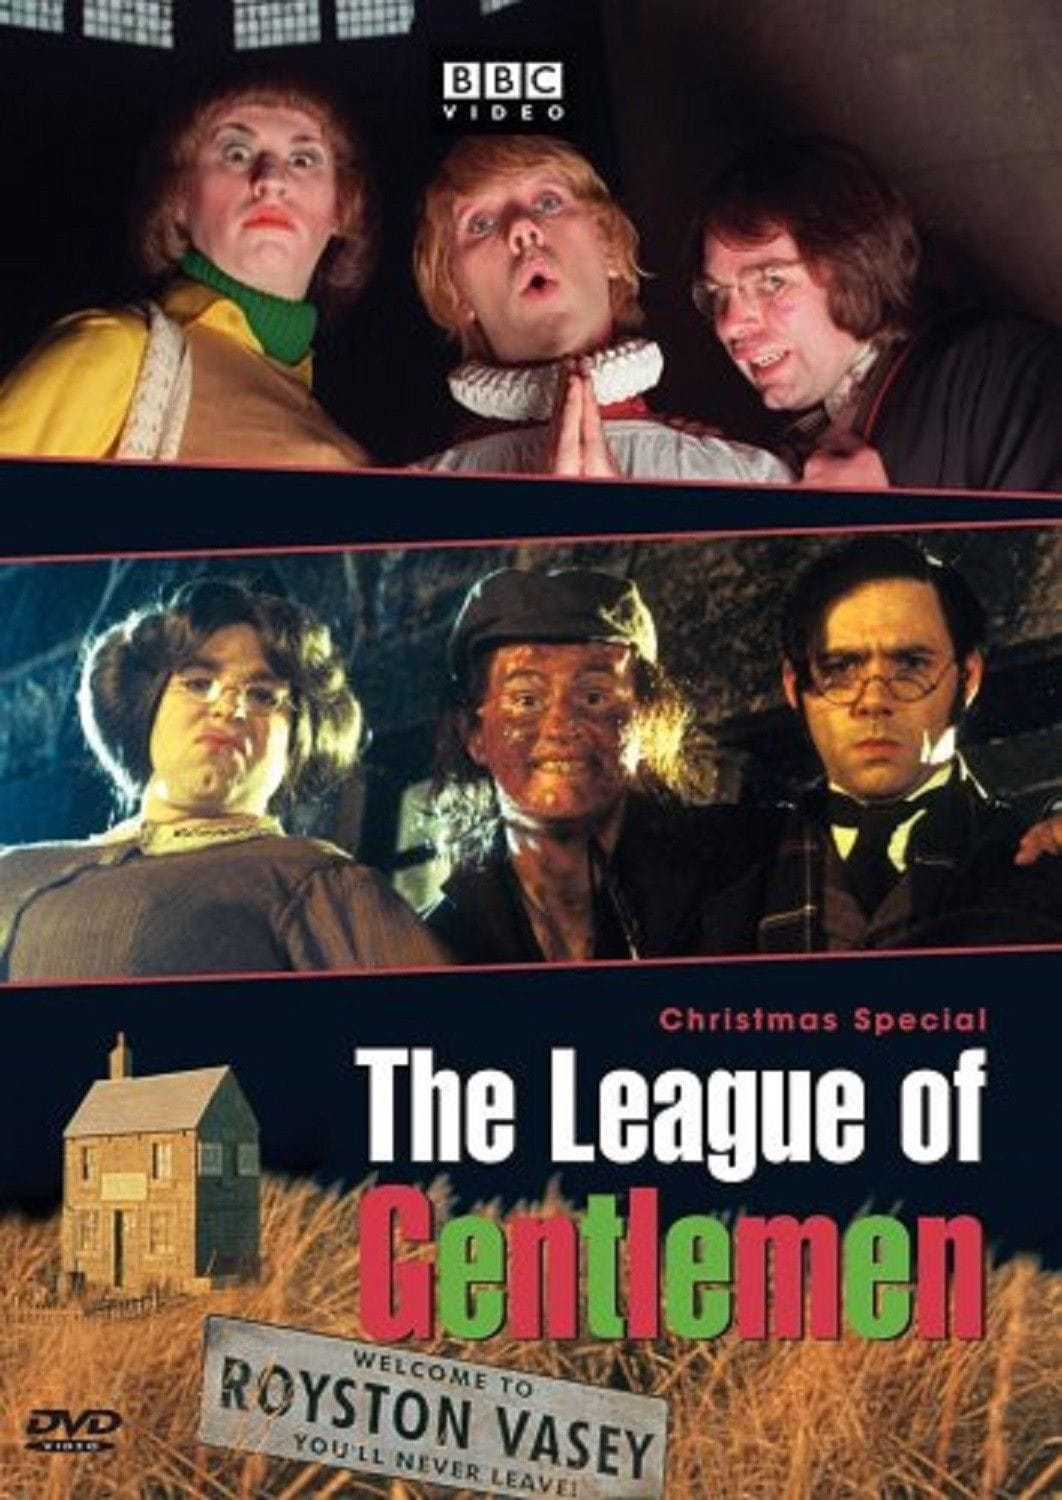 The League of Gentlemen Christmas Special (2000)